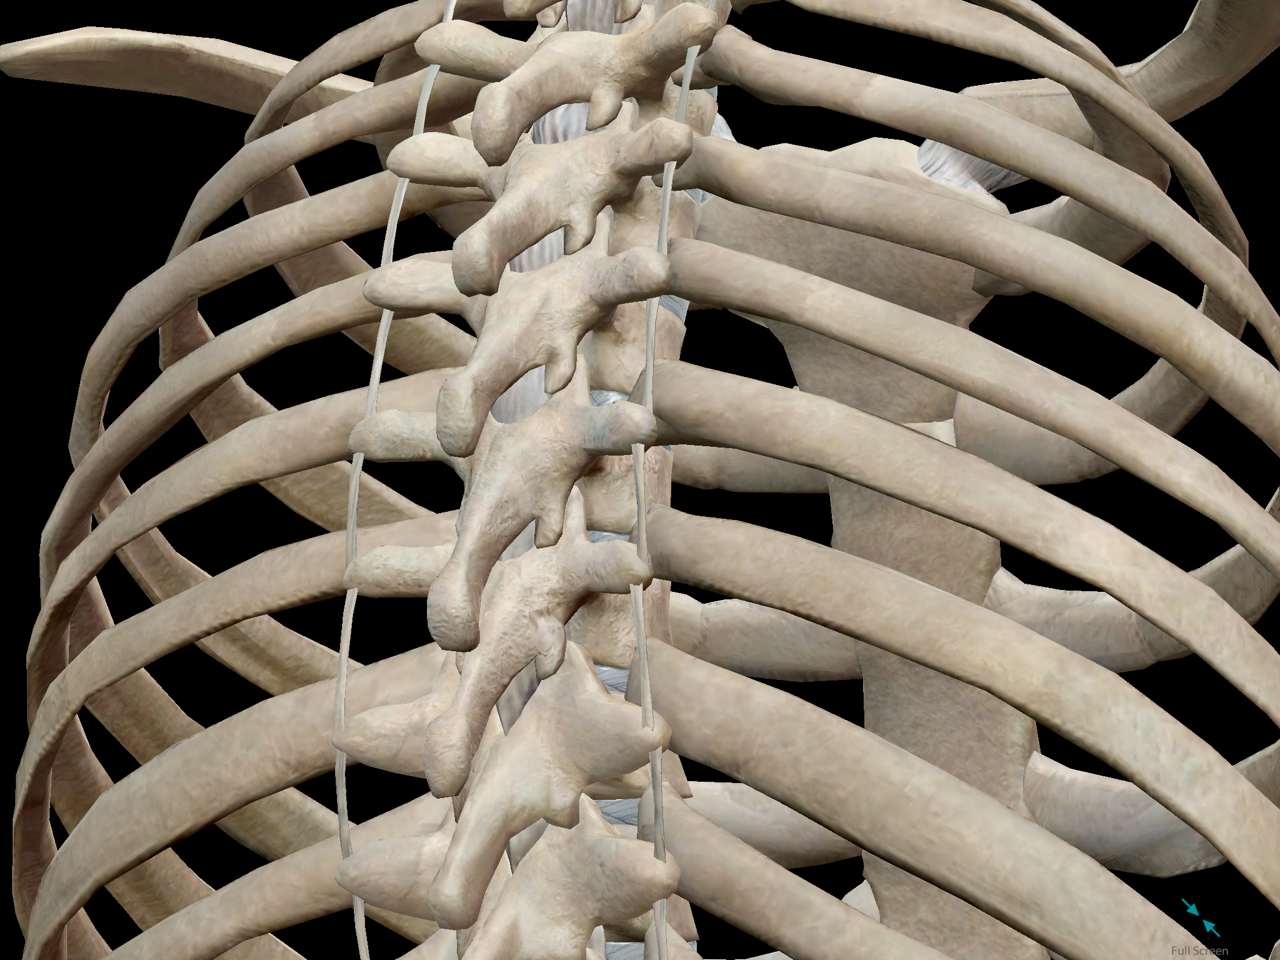 thoracic-cage-vertebrae-spine-ribs-posterior.png